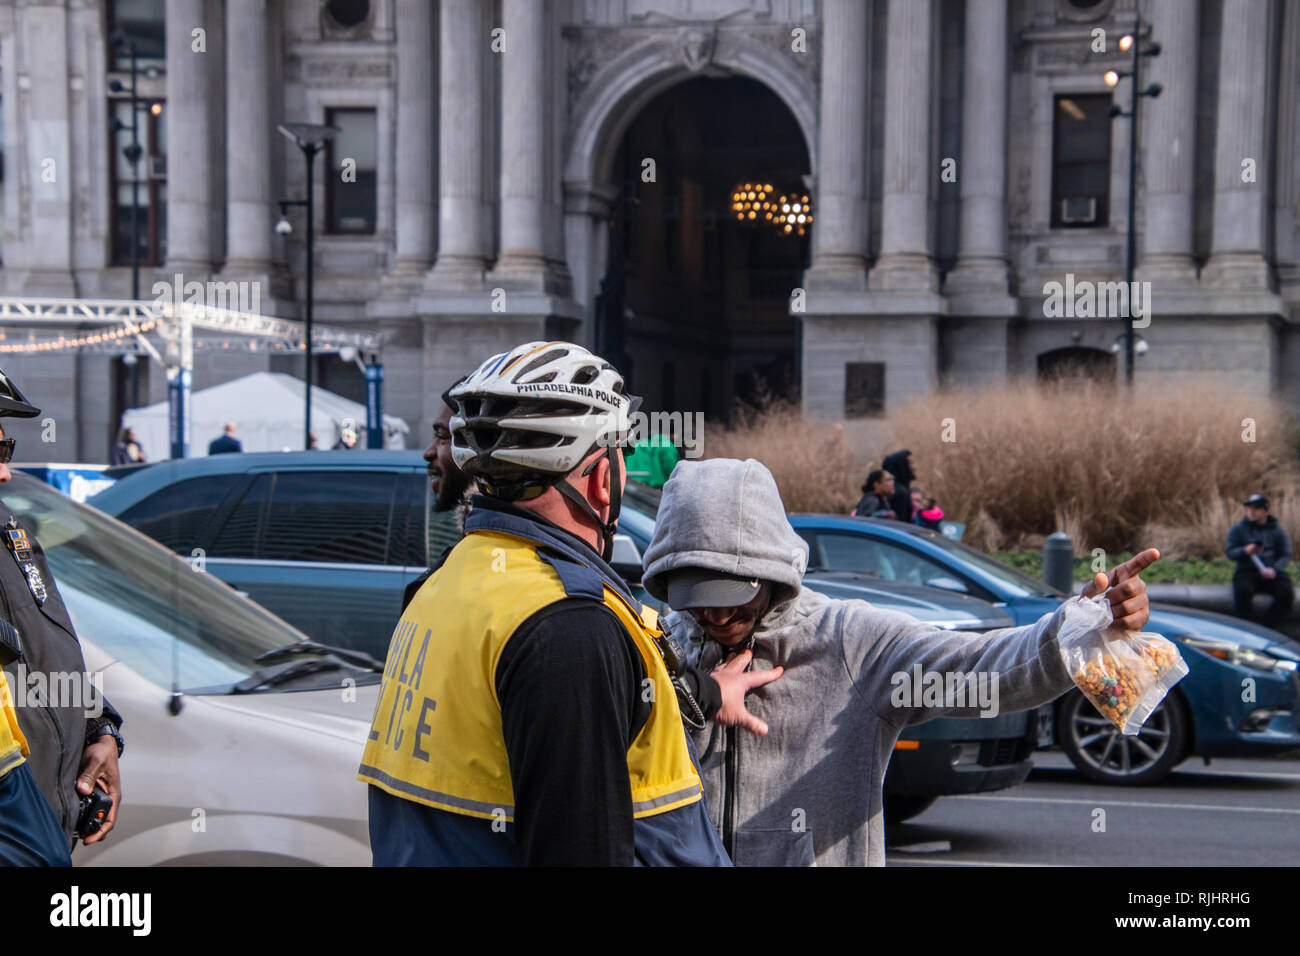 Philadelphia, Pennsylvania - February 5, 2019: Caucasian police officer is seen pushing an unruly black male during a protest in front of city hall ne - Stock Image